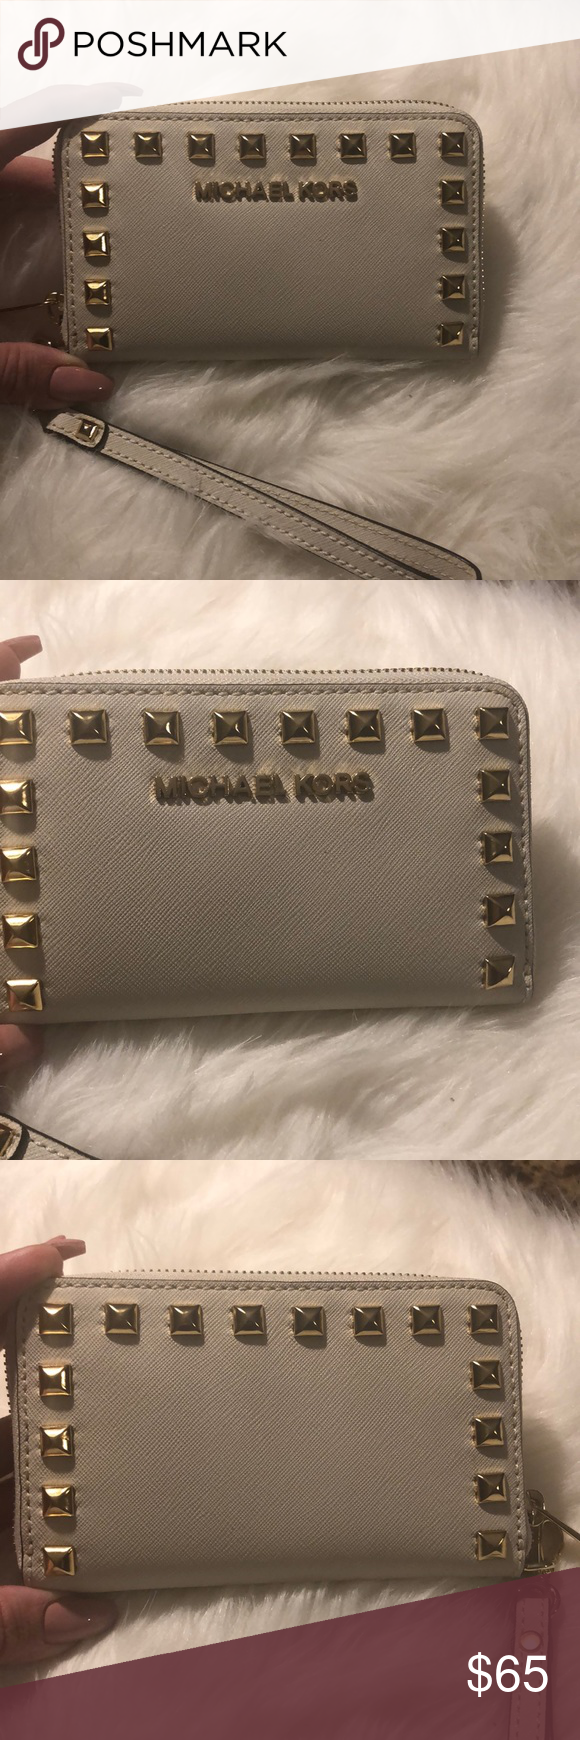 a3689a5eafd7 ... mk purse ef676 25820  australia sunday nite flash salemk studded wallet  michael kors studded wallet with detachable strap cream 3c301